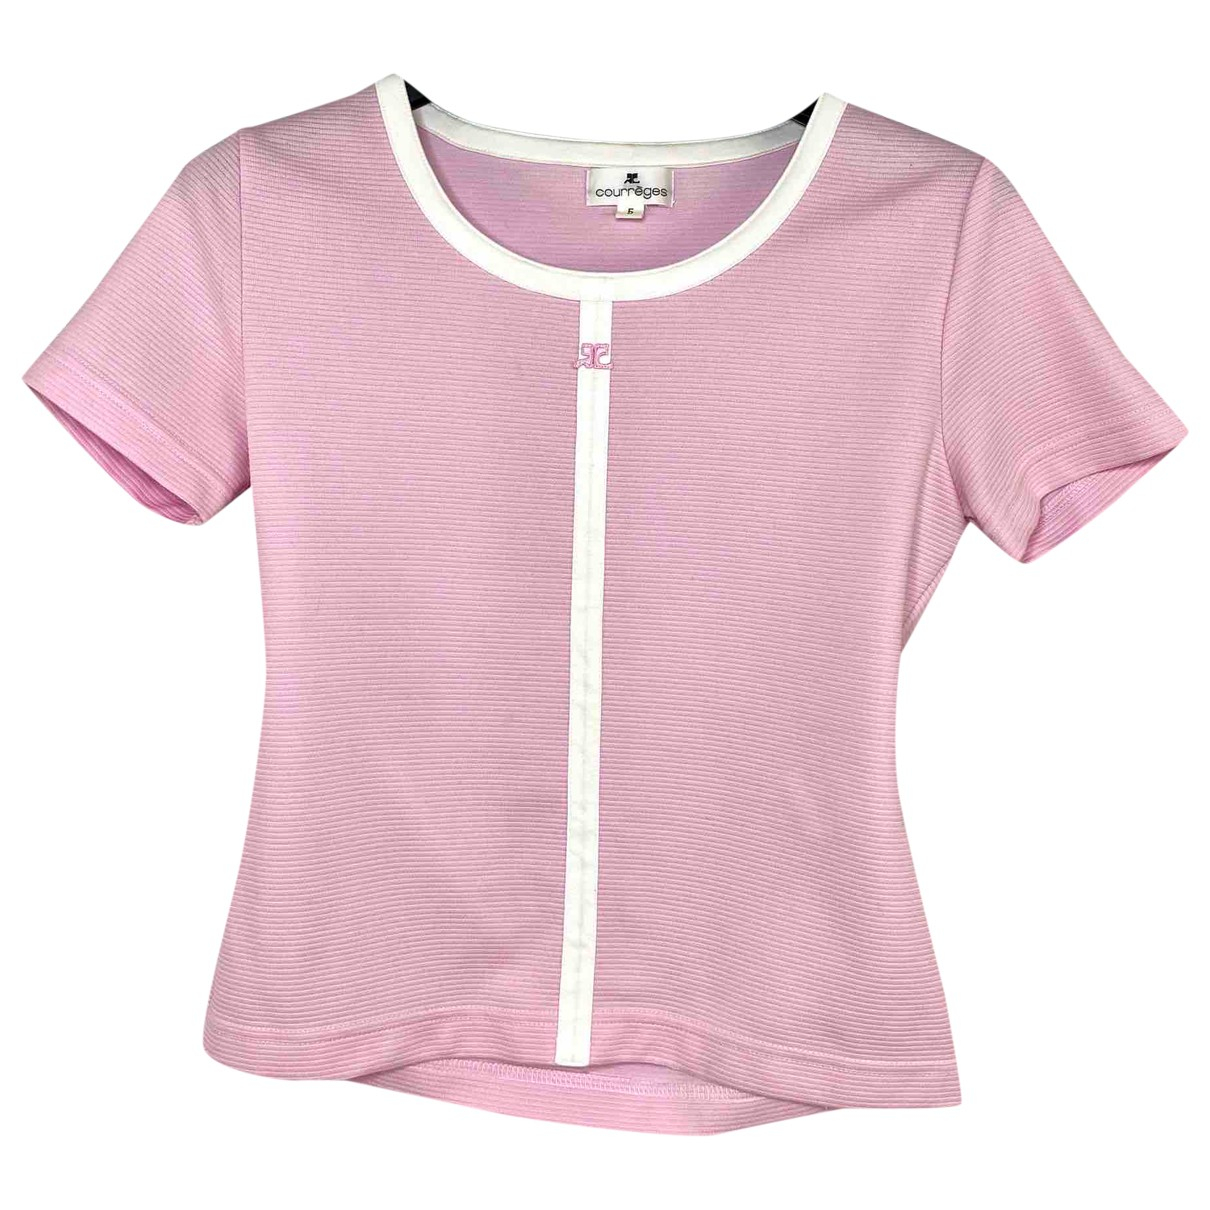 Courrèges \N Pink  top for Women 34 FR